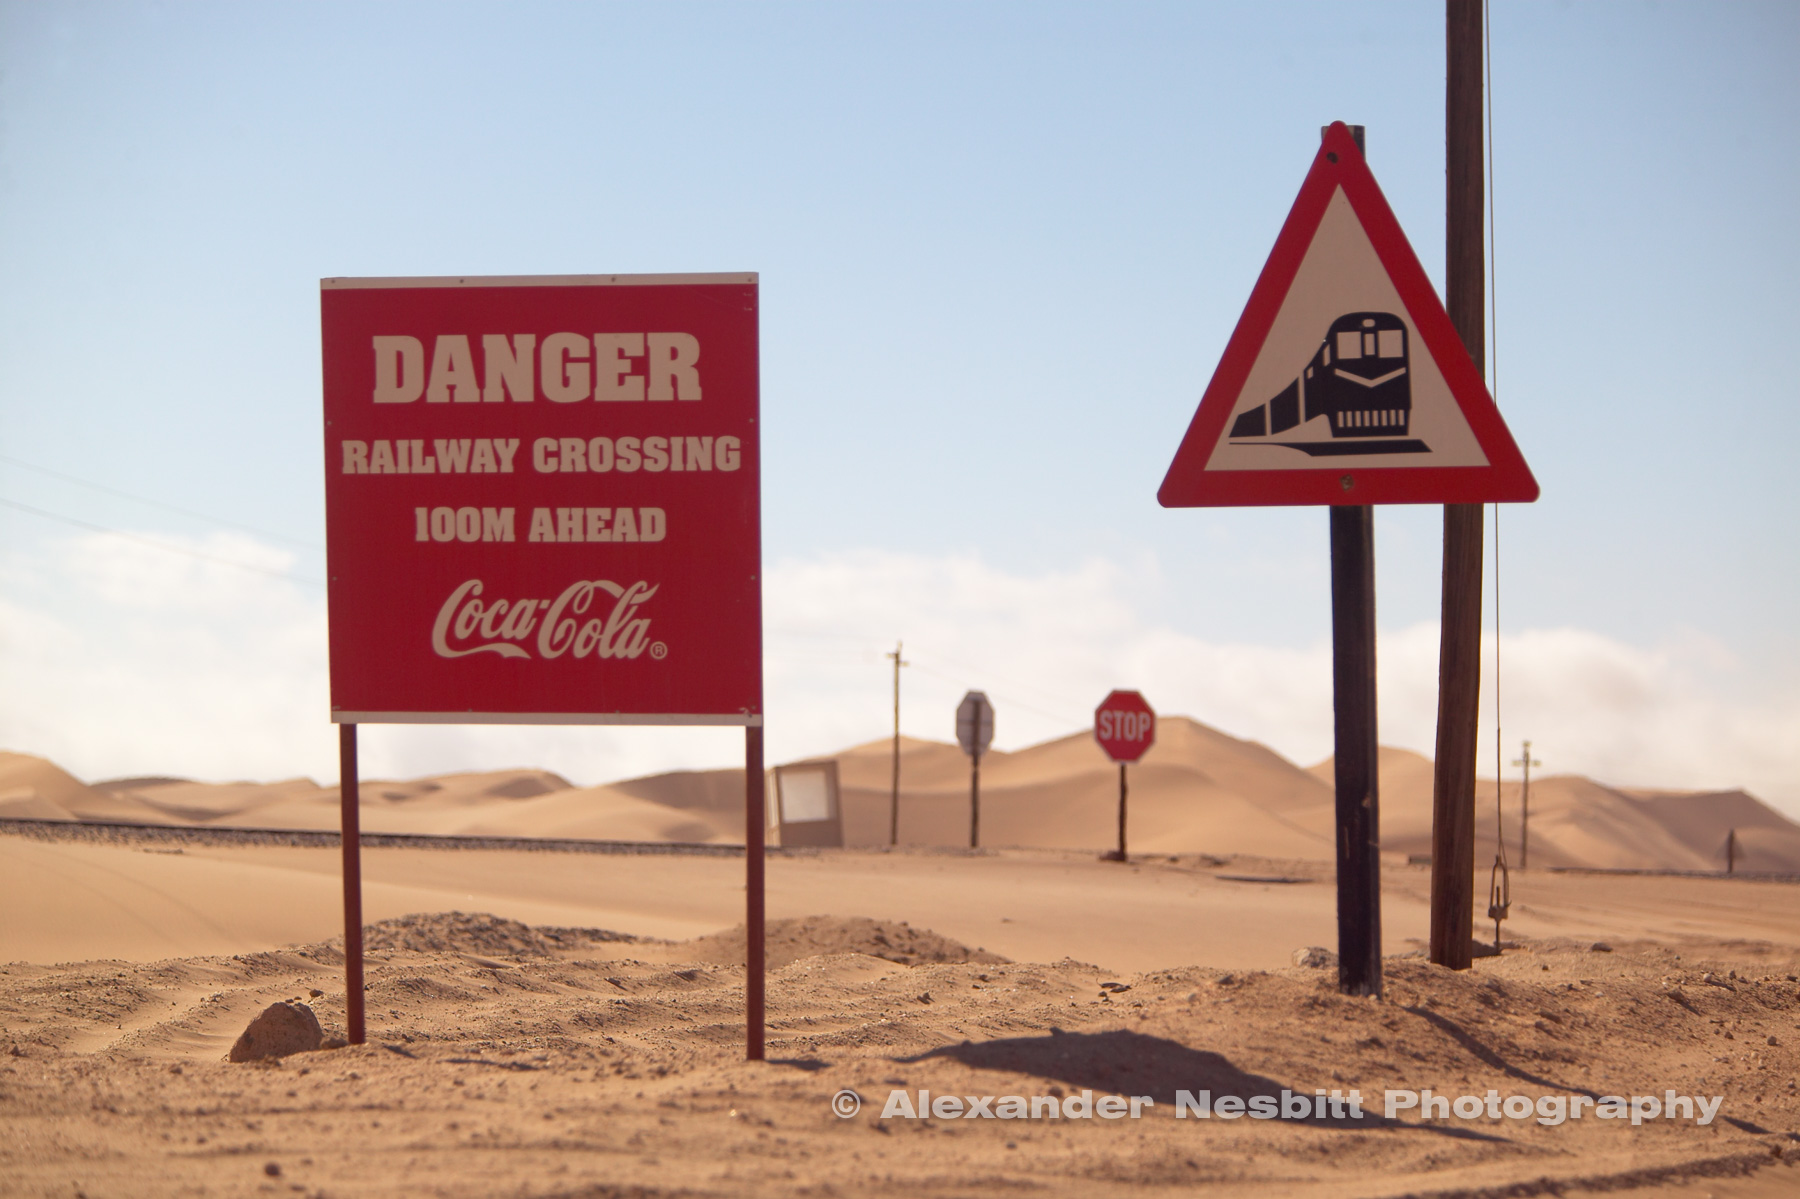 Namibia, 2004 - CocaCola sponsored signs in around the popular dune area of Walvis Bay make a great example of the subtle influence of what many call Cocacolonialism.